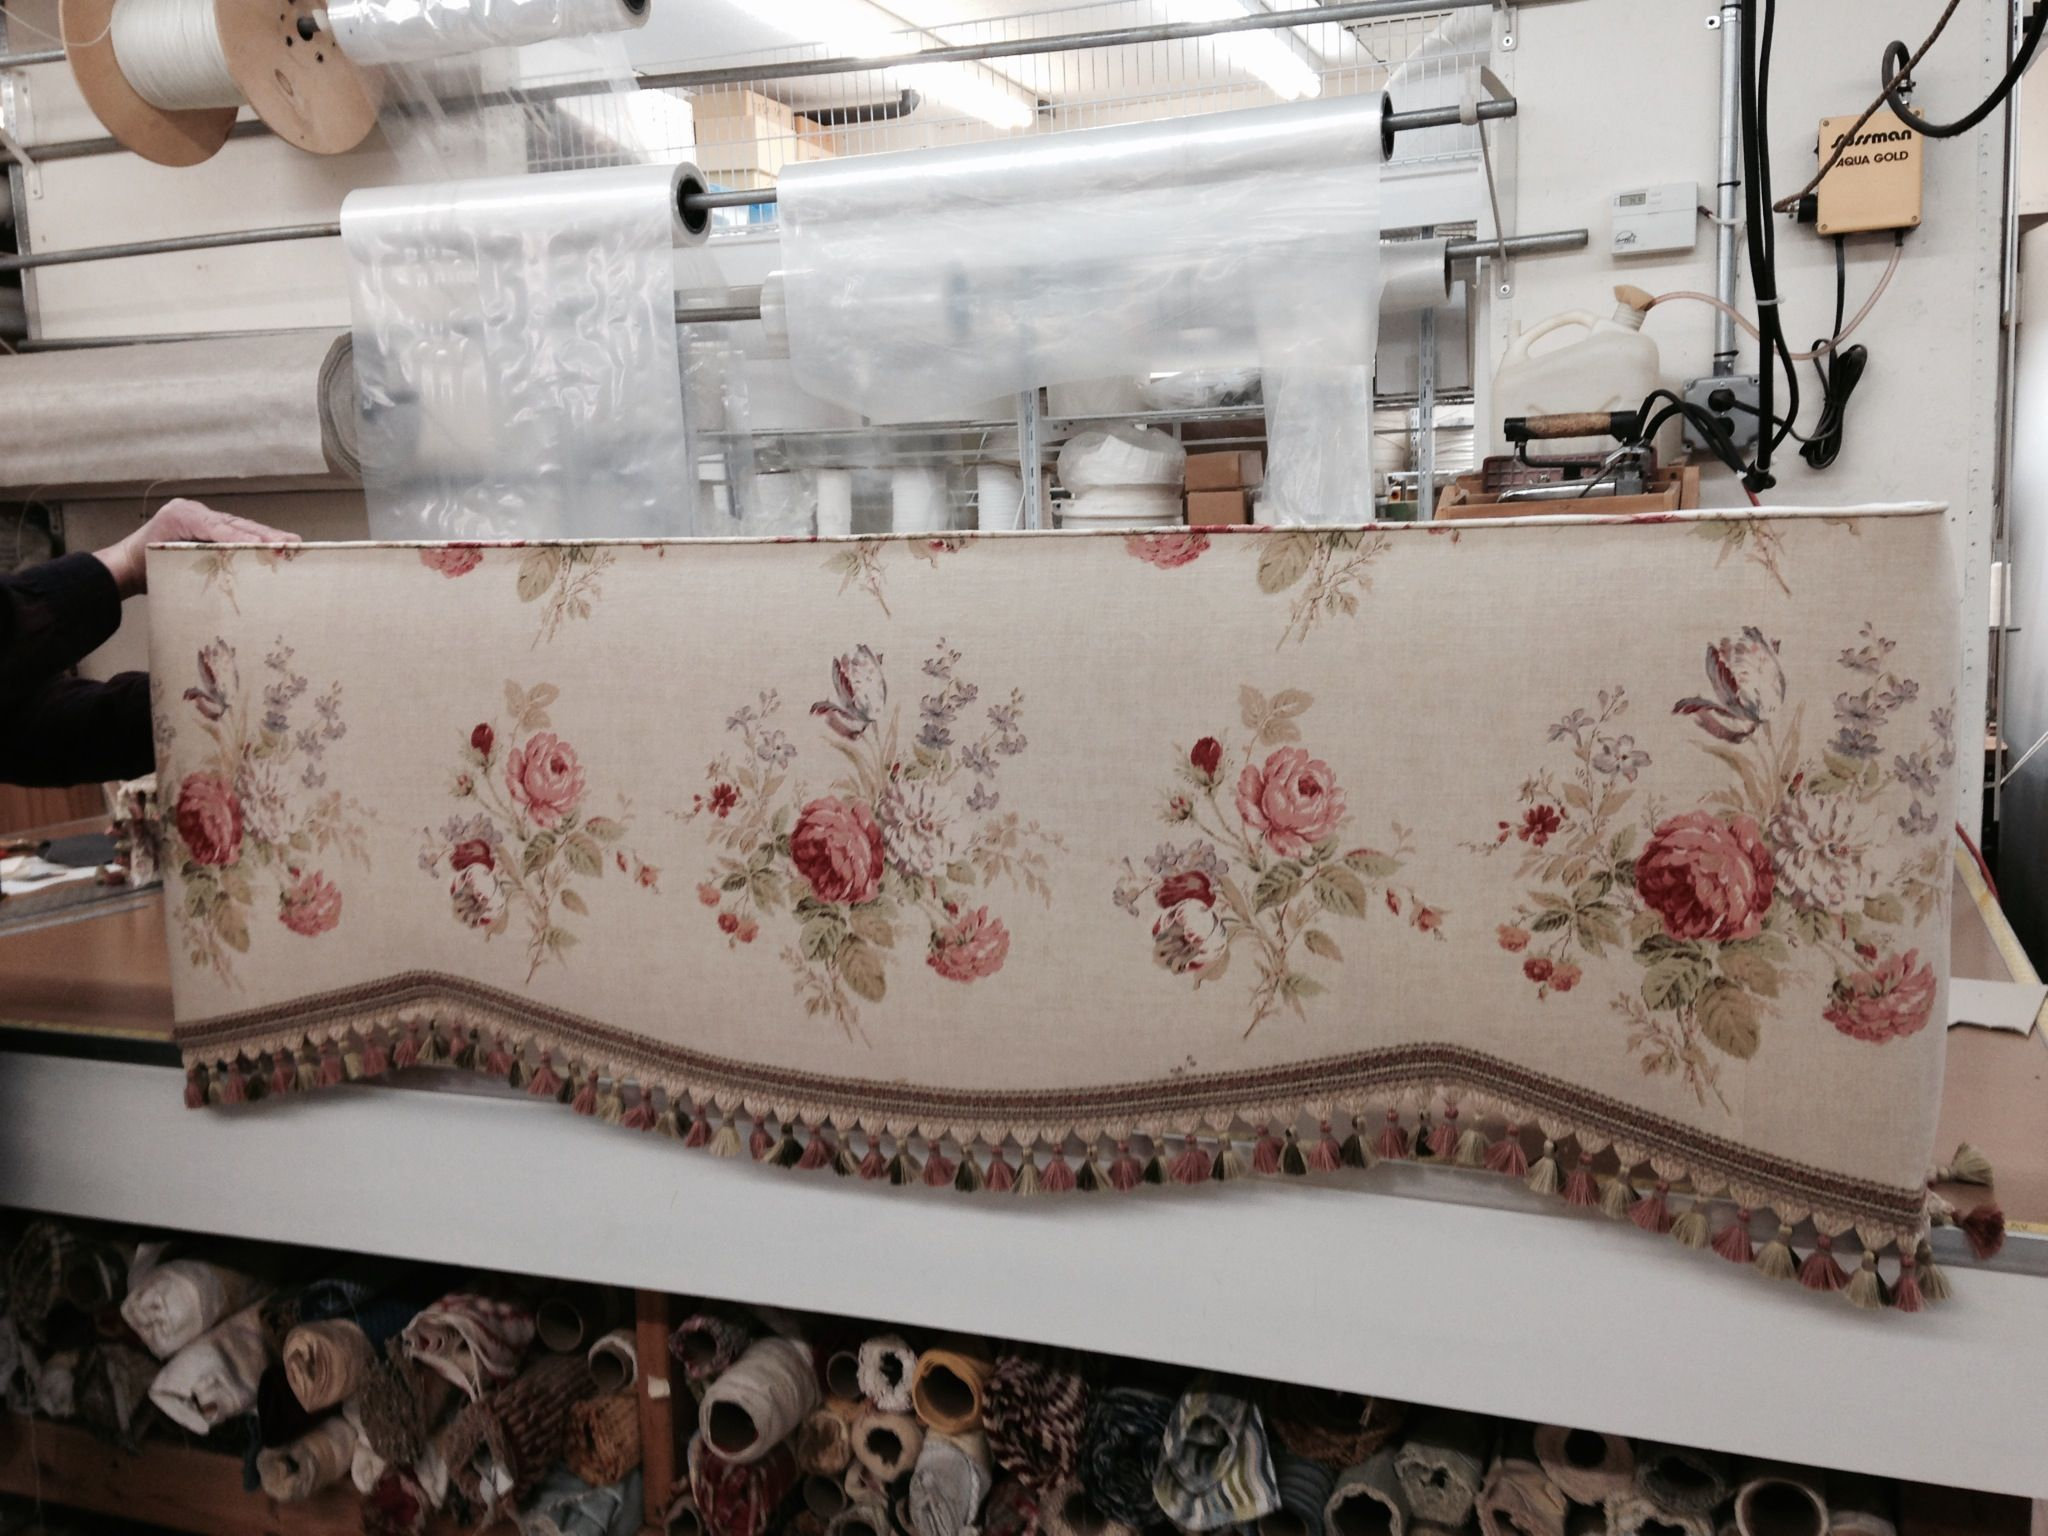 Upholstered Cornice In Colefax Fowler Floral With Robert Allen Fringe Trim